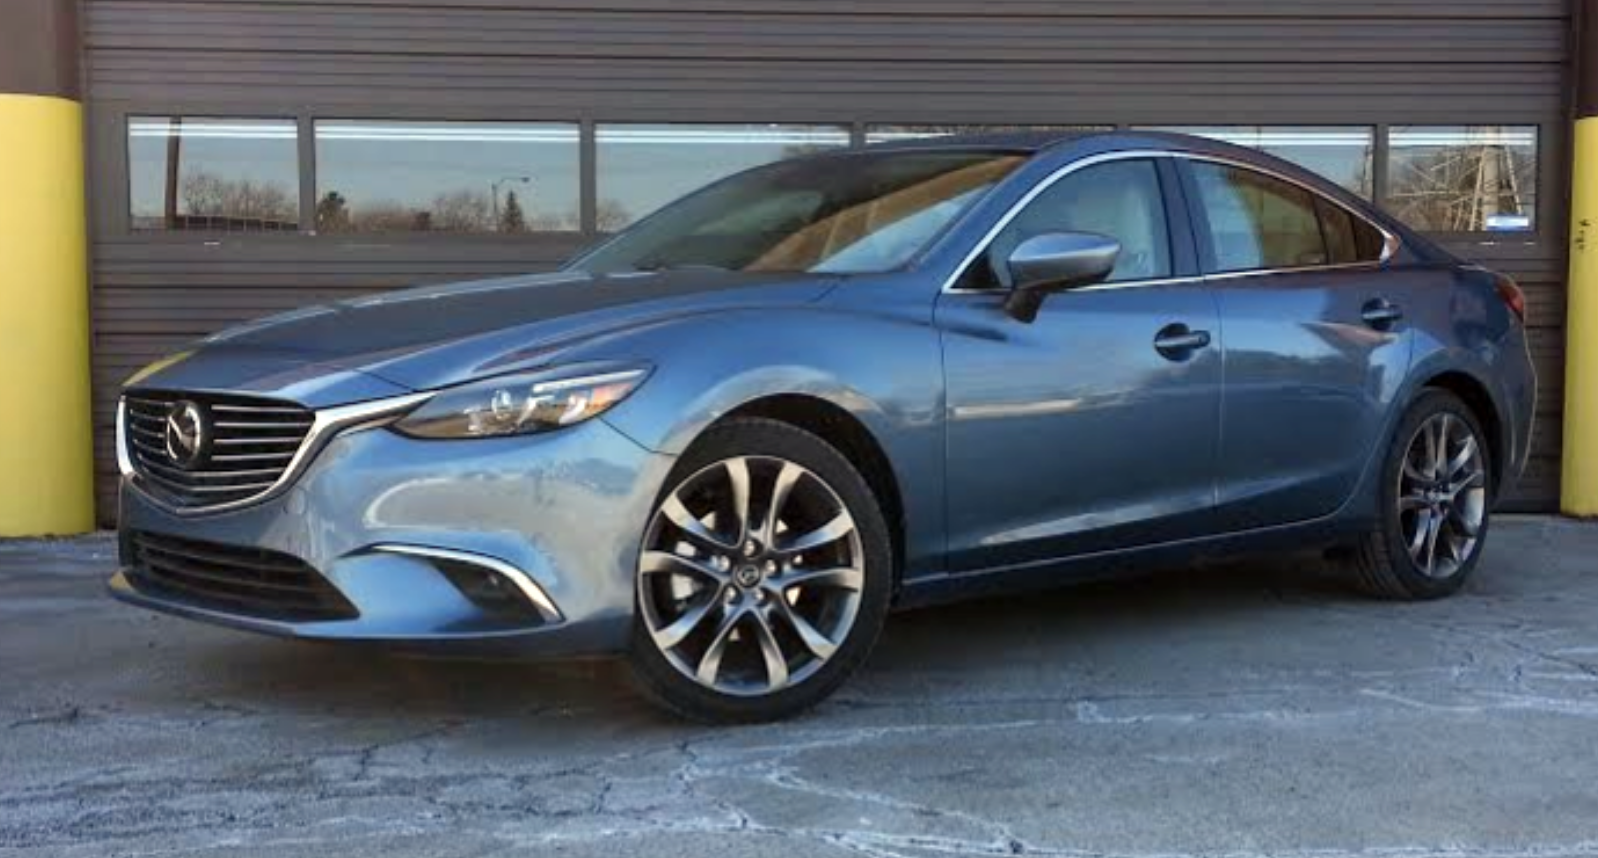 Test Drive: 2016 Mazda 6 i Grand Touring | The Daily Drive ...